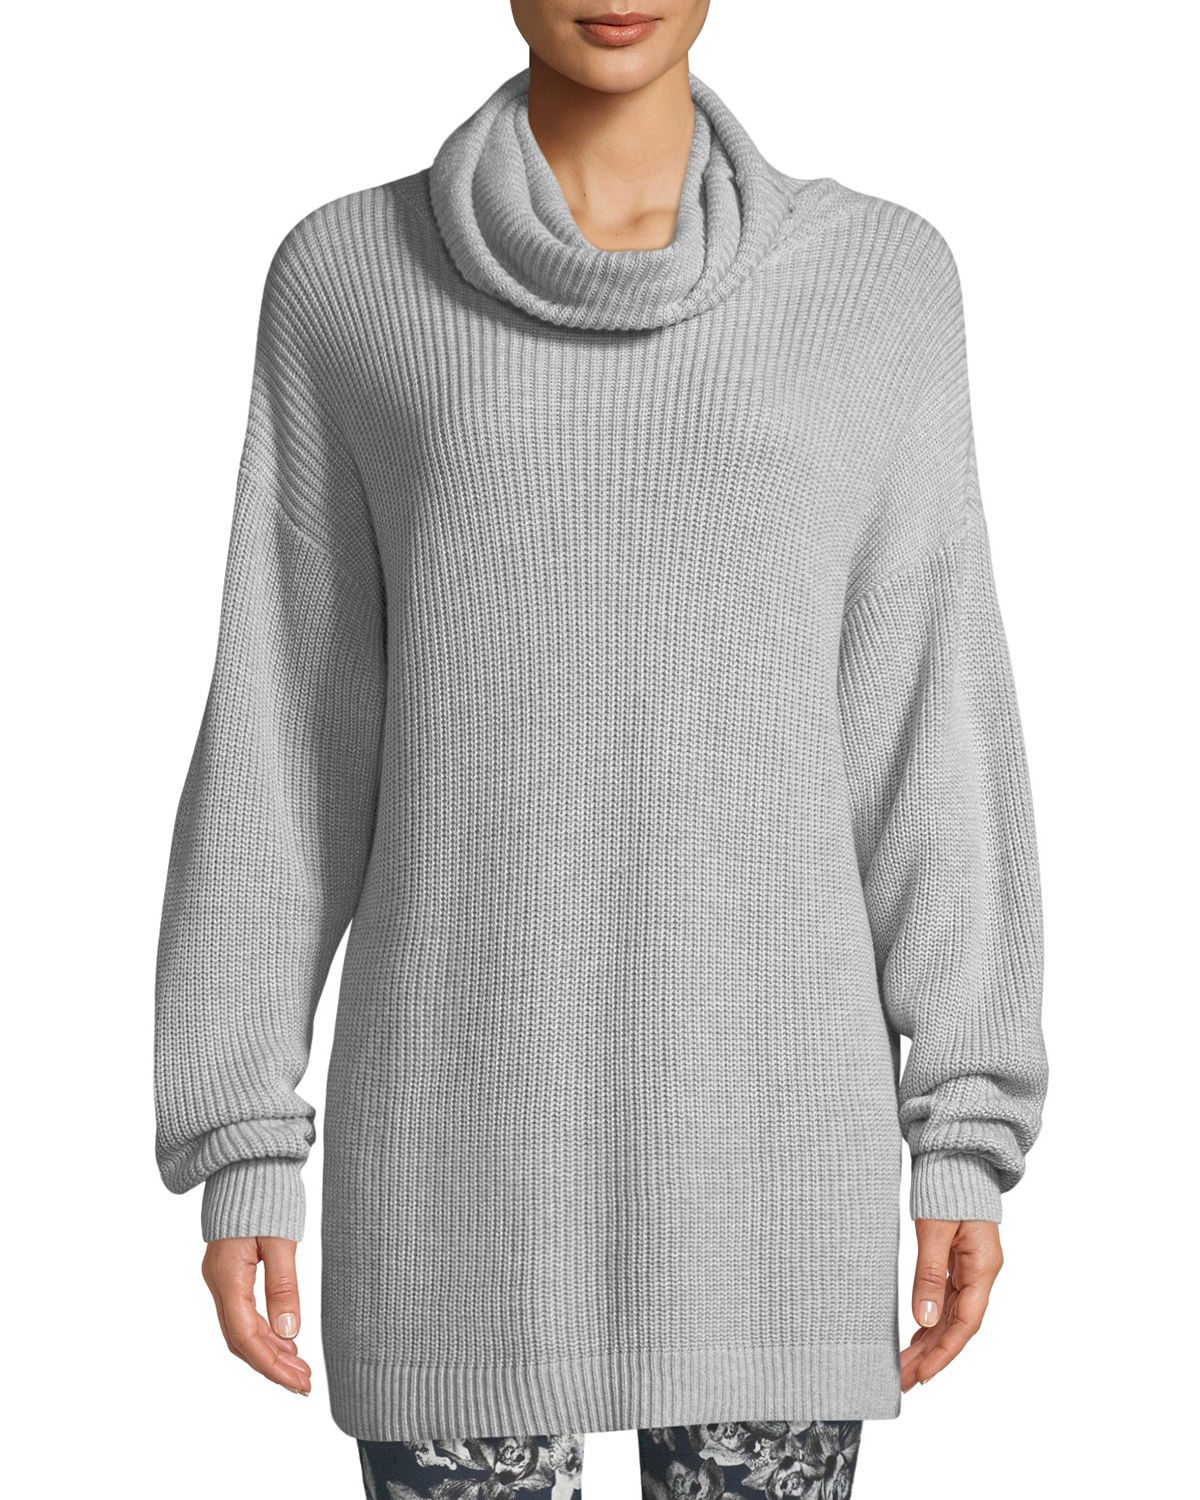 Lenox Turtleneck Sweater Dress